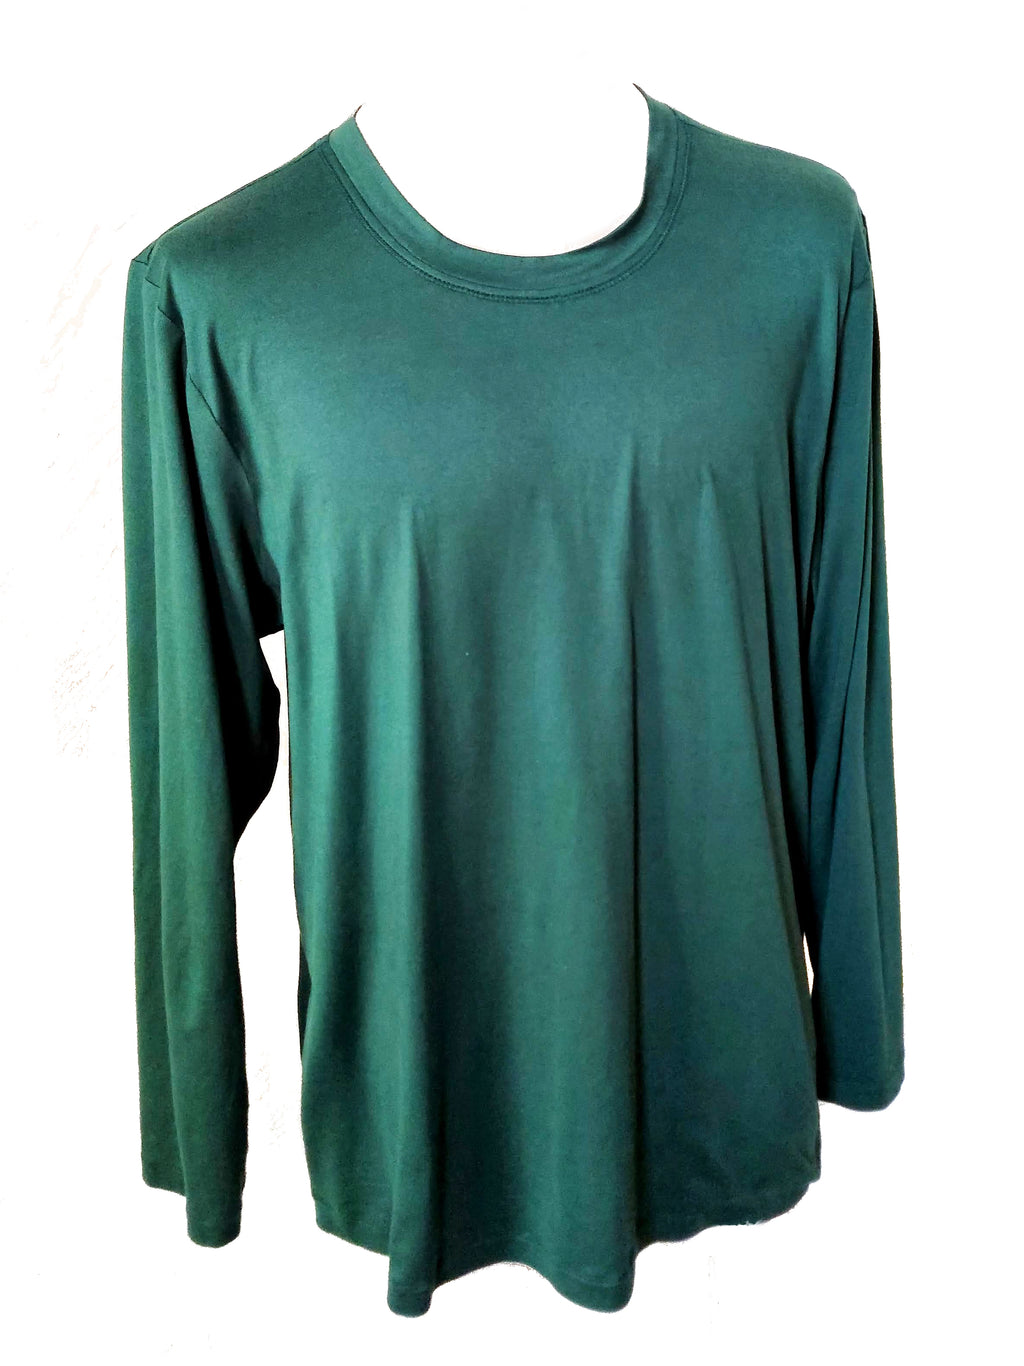 Hunter Green Long Sleeve Men's Shirt. Shirt on a mannequin showing the front of the shirt.